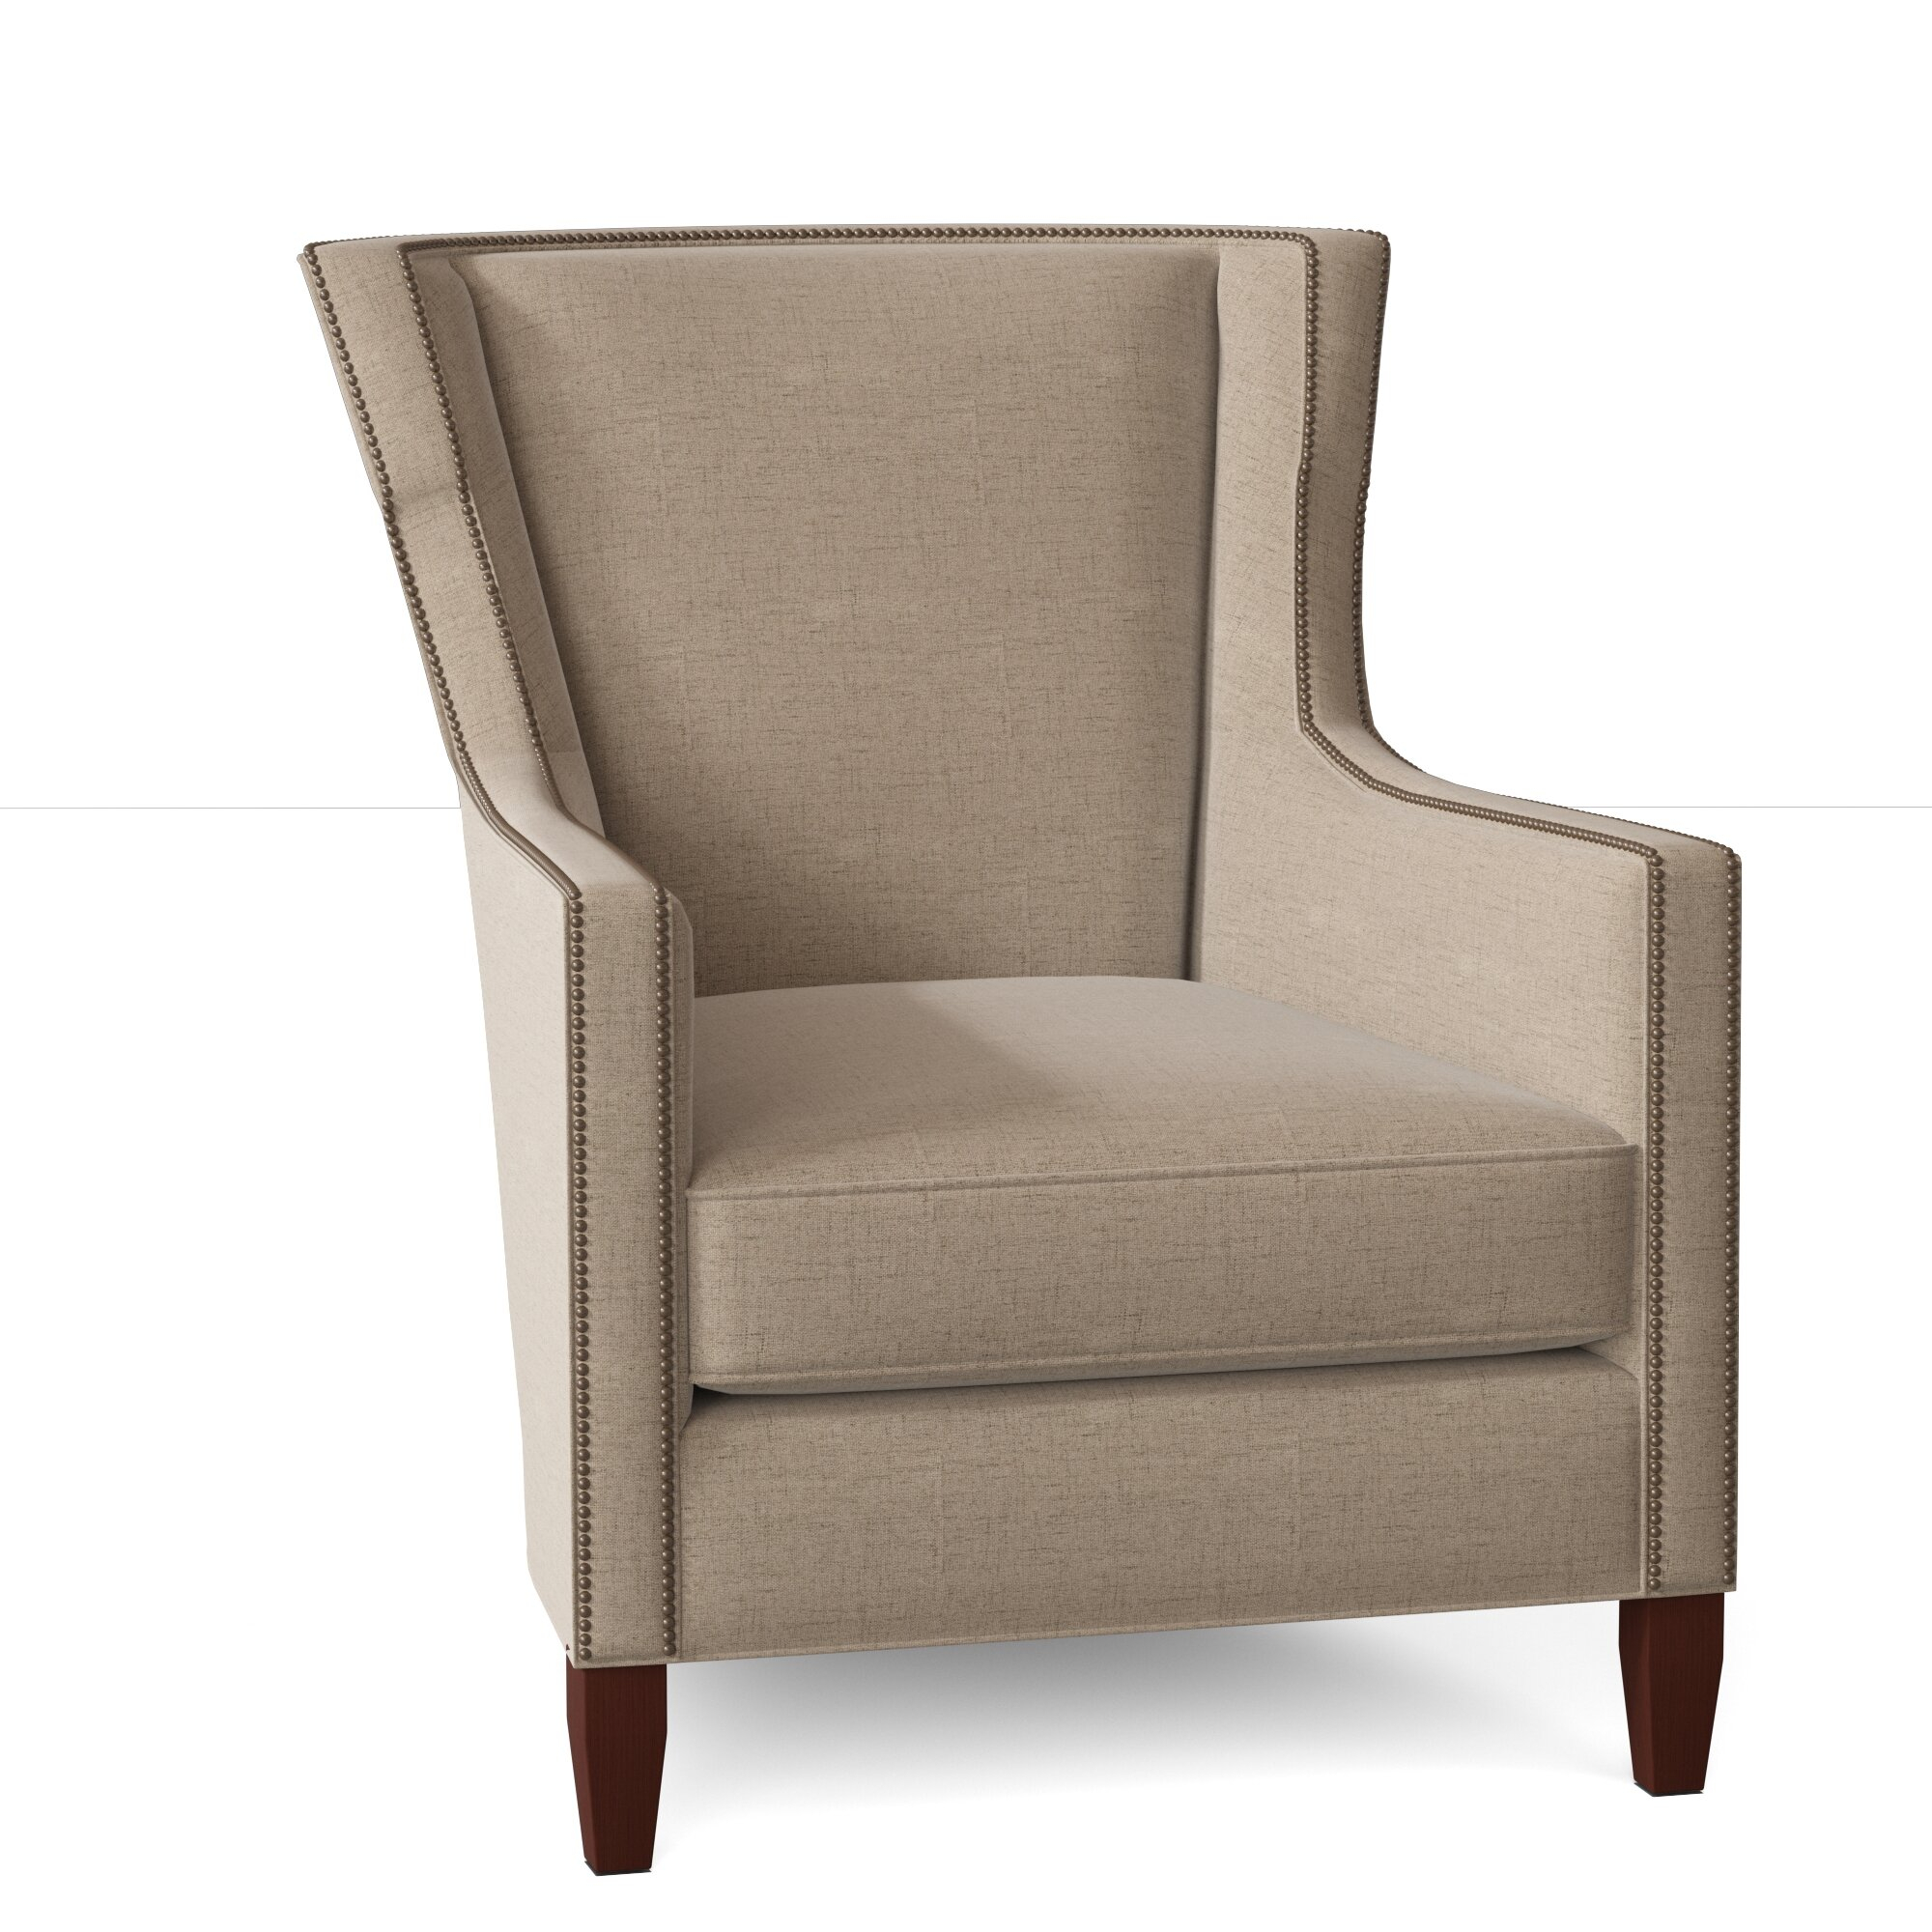 Verbena Wingback Chair Intended For Sweetwater Wingback Chairs (View 10 of 15)